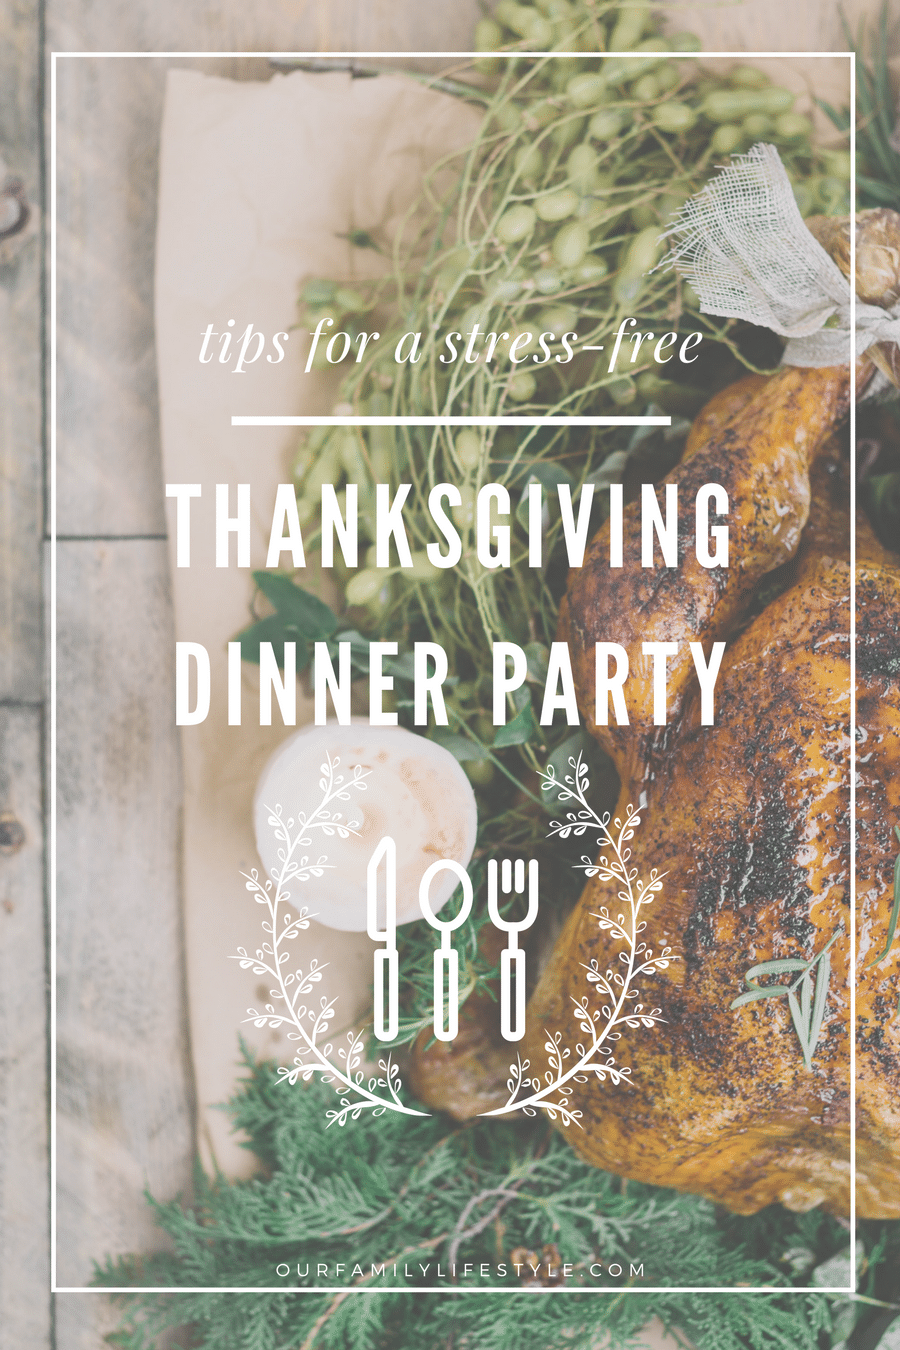 Tips for a Stress-Free Thanksgiving Dinner Party